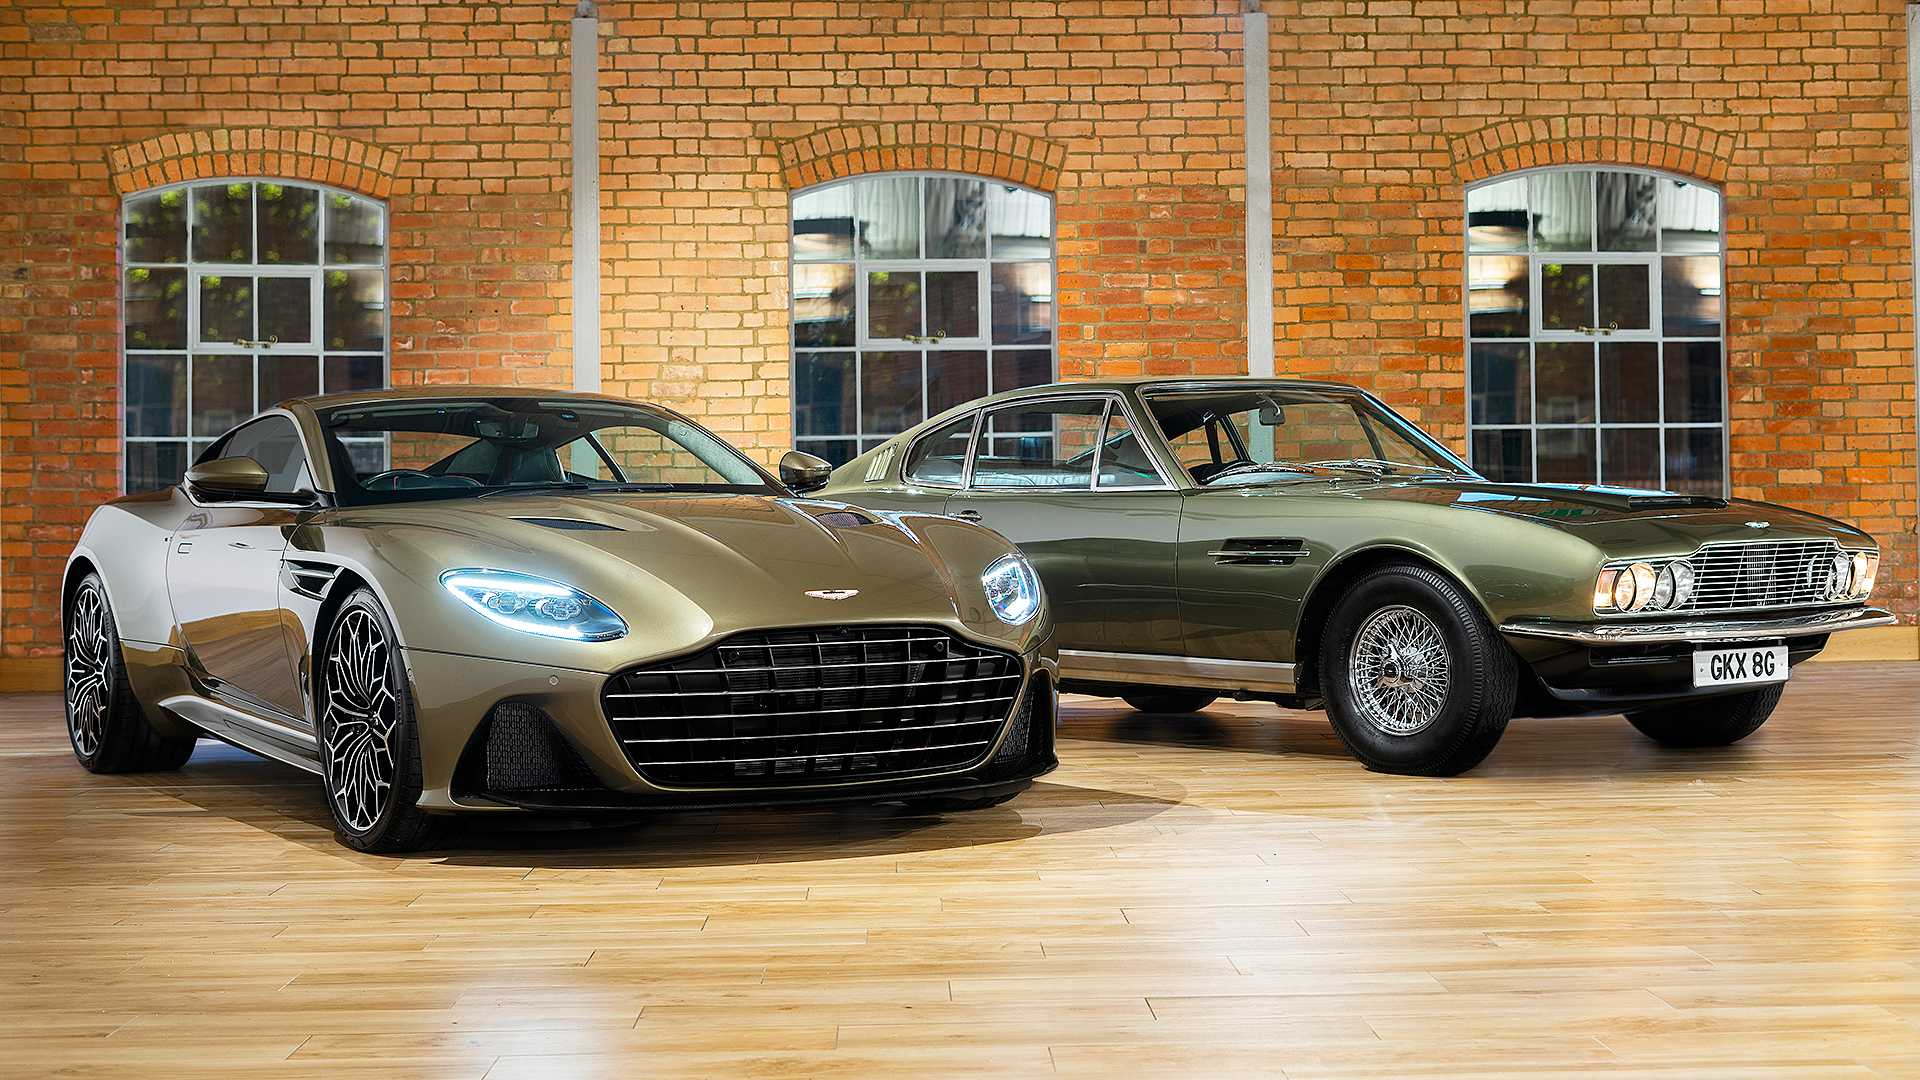 Aston Martin has taken the wraps off a special DBS Superleggera mini-series meant to celebrate 50 years of On Her Majesty's Secret Service, a 1969 James Bond movie